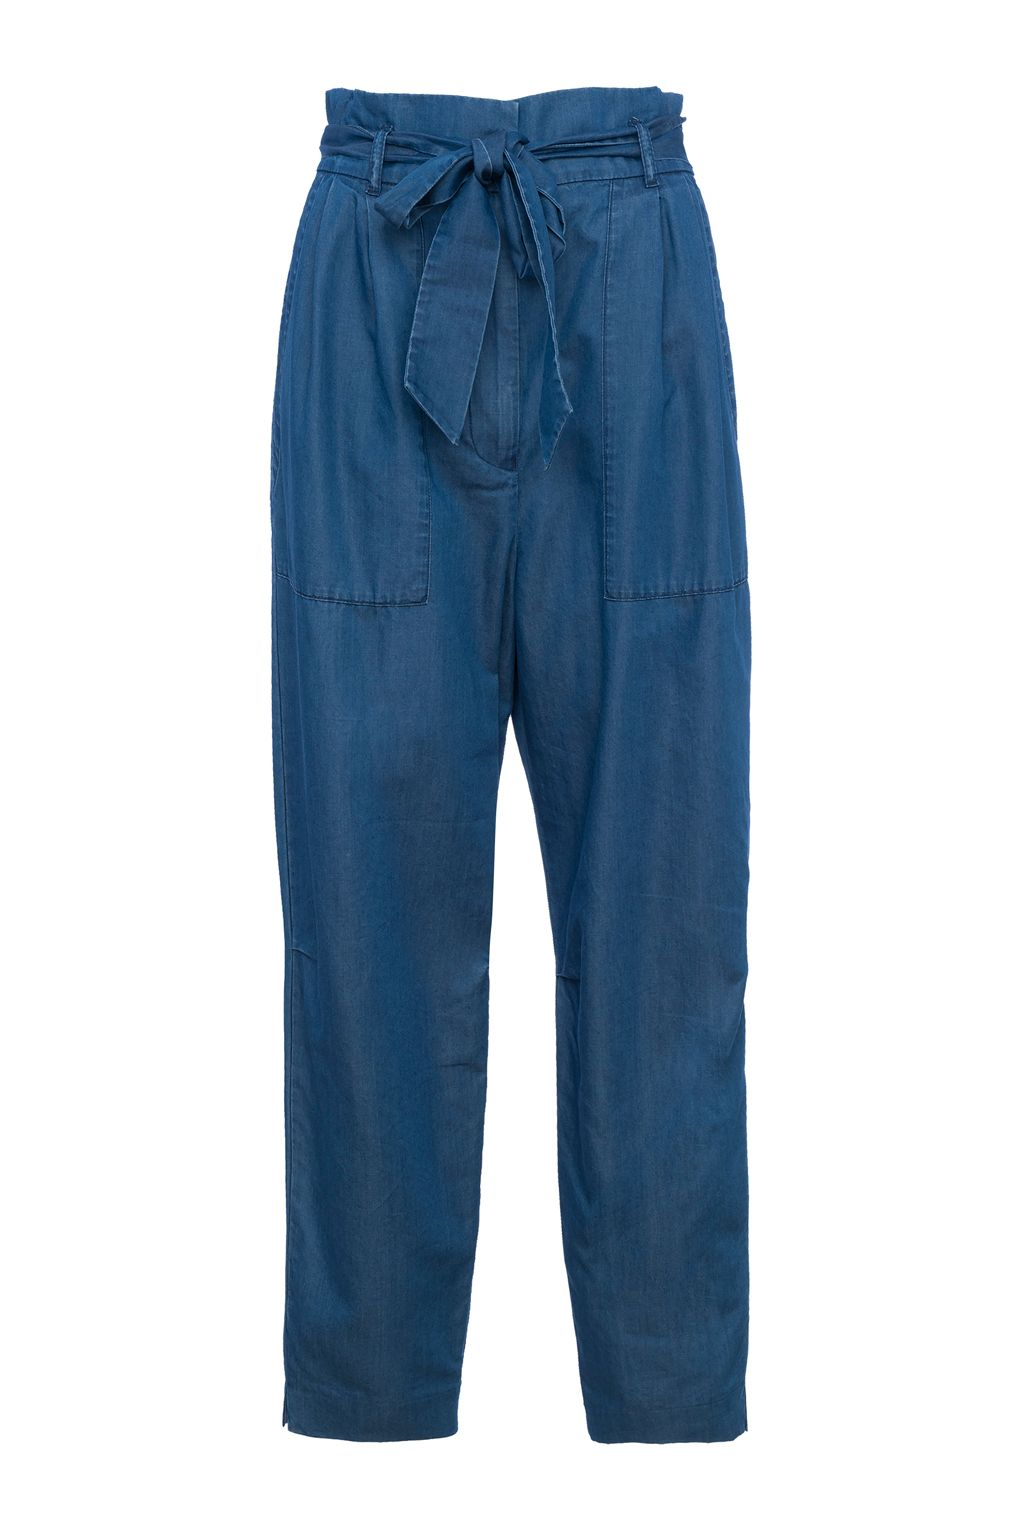 French Connection Ary Tencel Paperbag Waist Trousers, Indigo